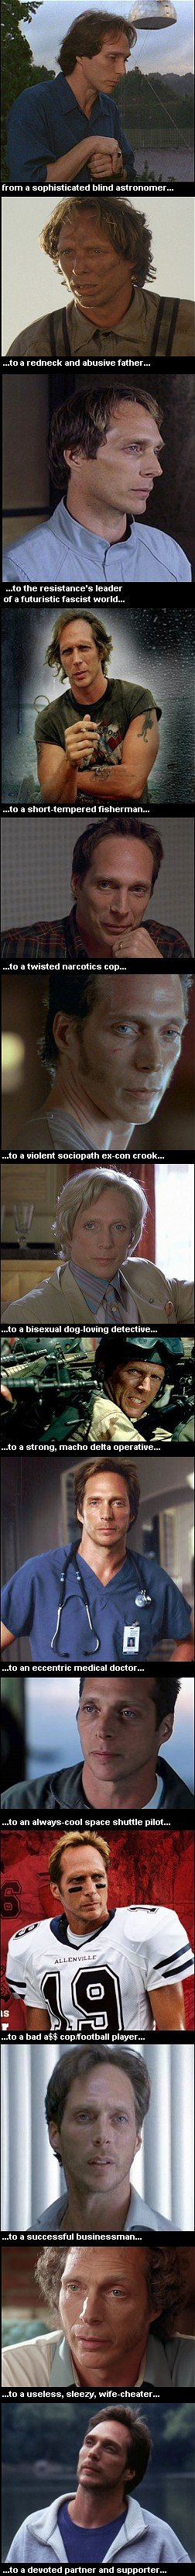 William Fichtner in some of his roles